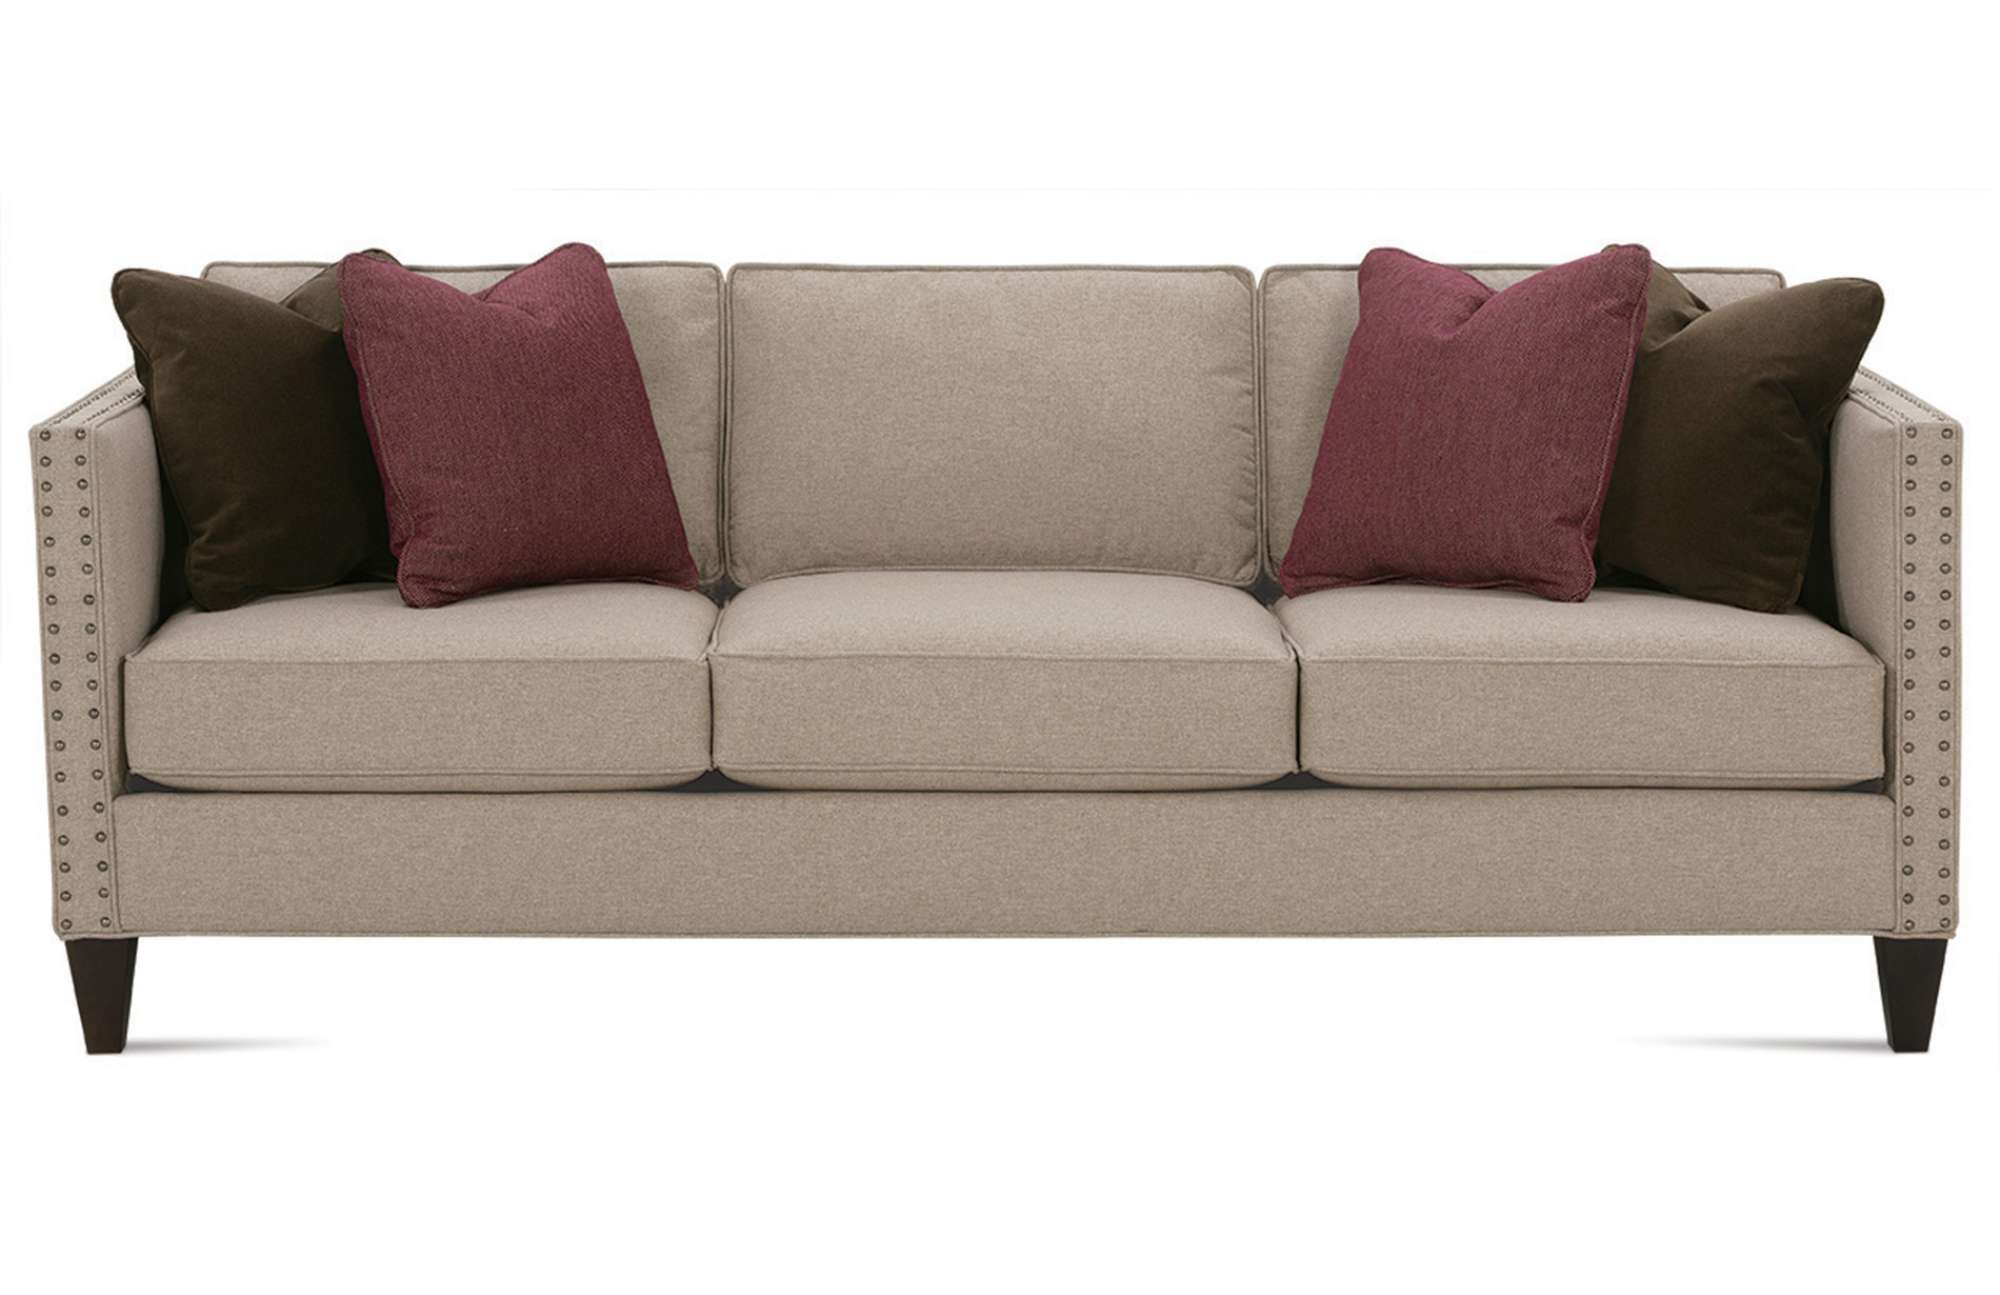 raleigh sofa knock off sectional sofas tucson extraordinary design within reach